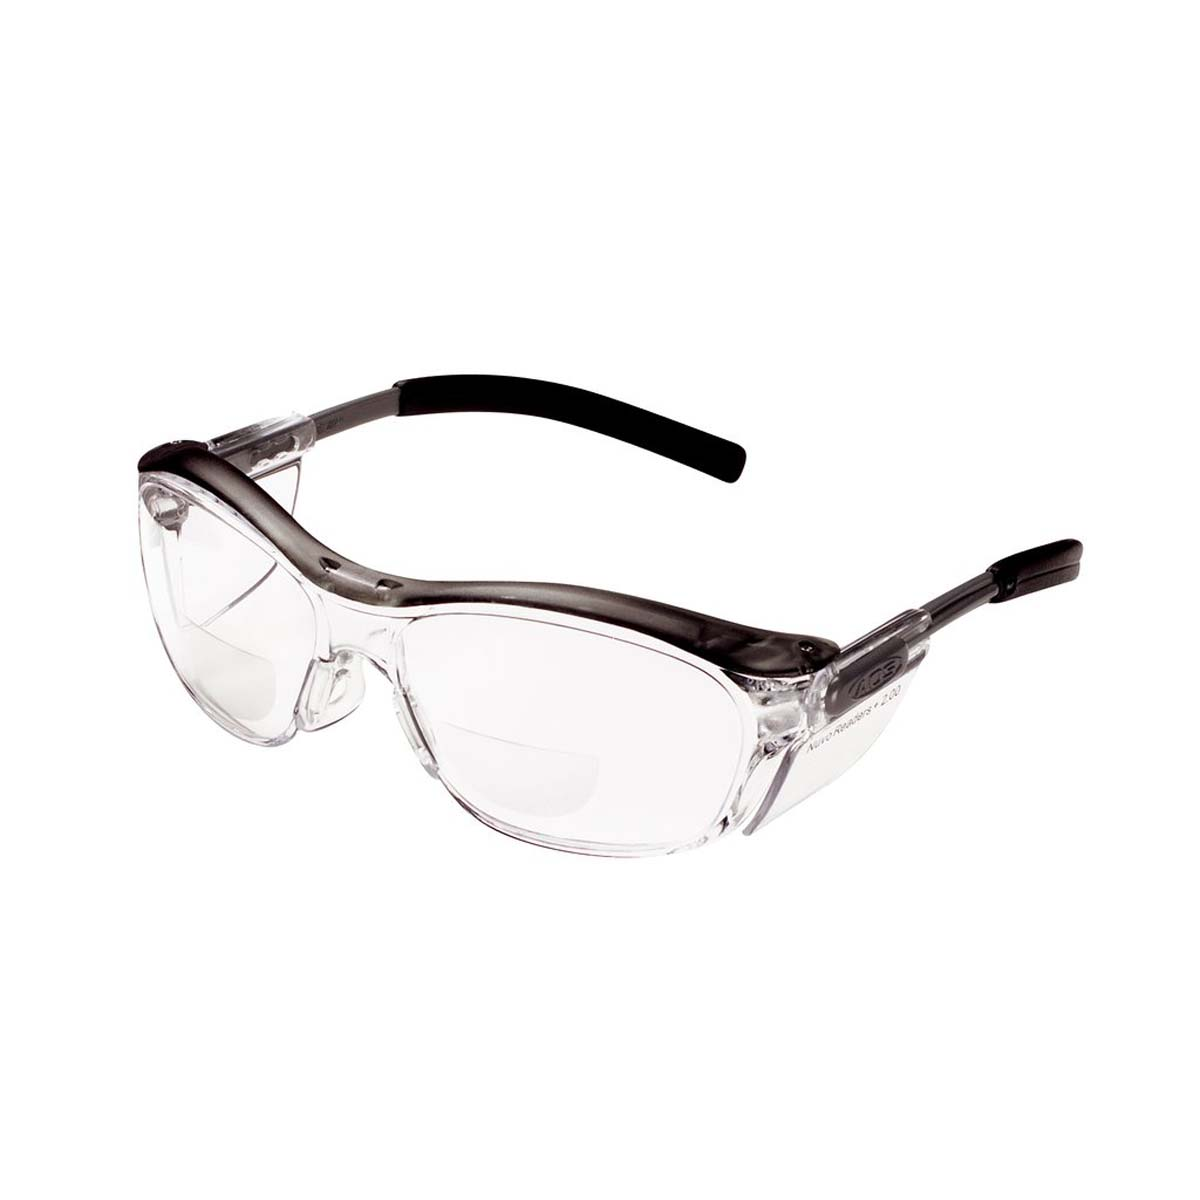 """3Mâ""""¢ Nuvoâ""""¢ Reader Protective Eyewear 11435-00000-20 Clear Lens, Gray Frame, +2.0 Diopter"""